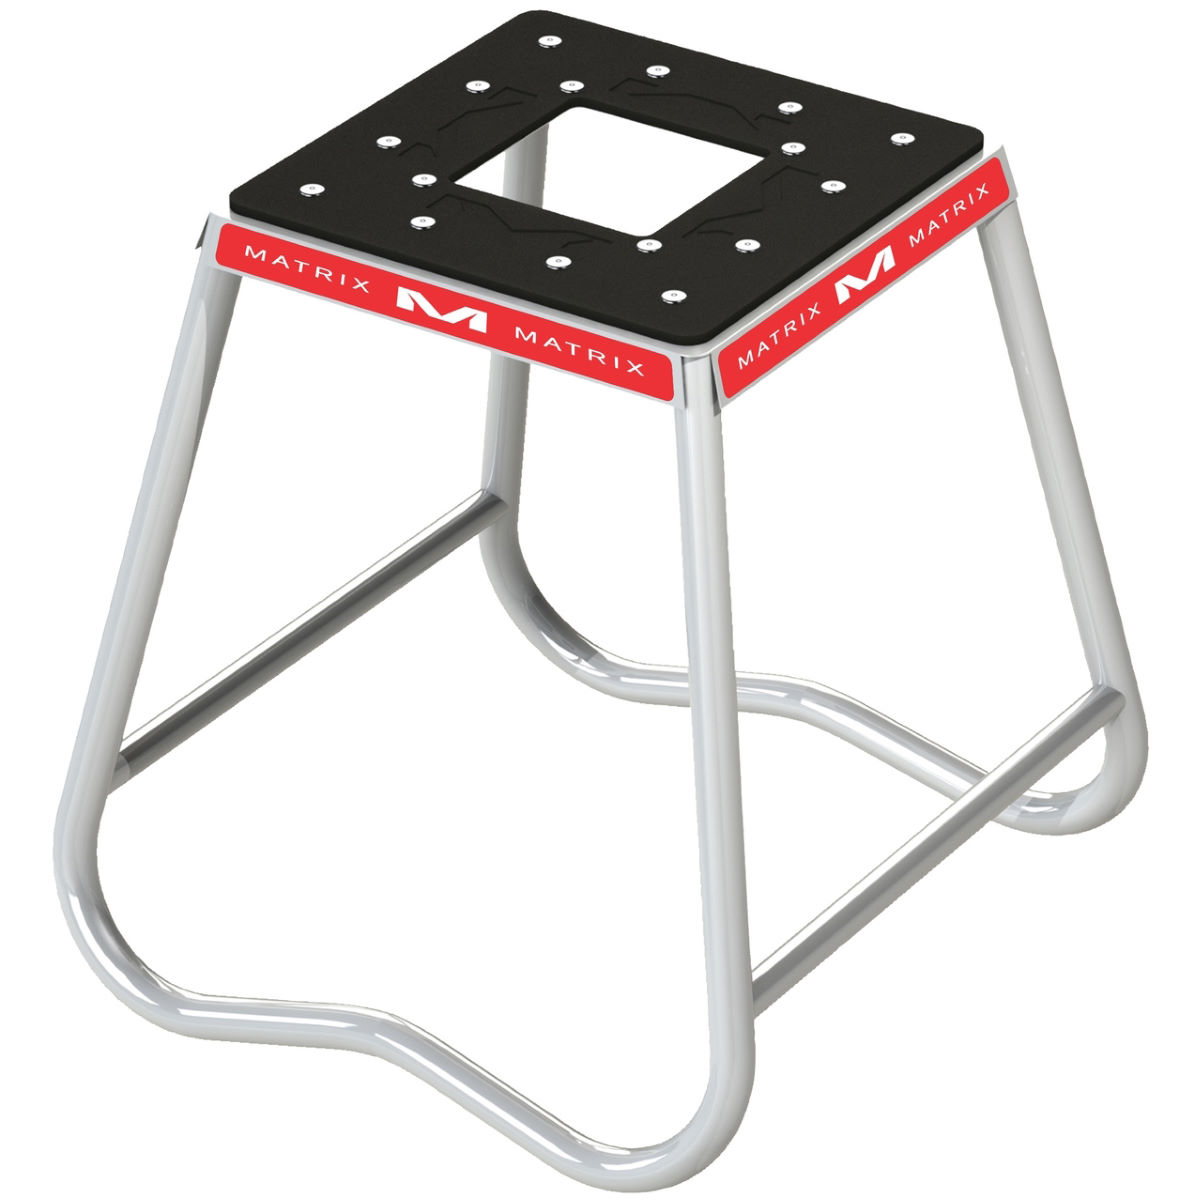 Matrix C1 Carbon Steel Stand - Soportes